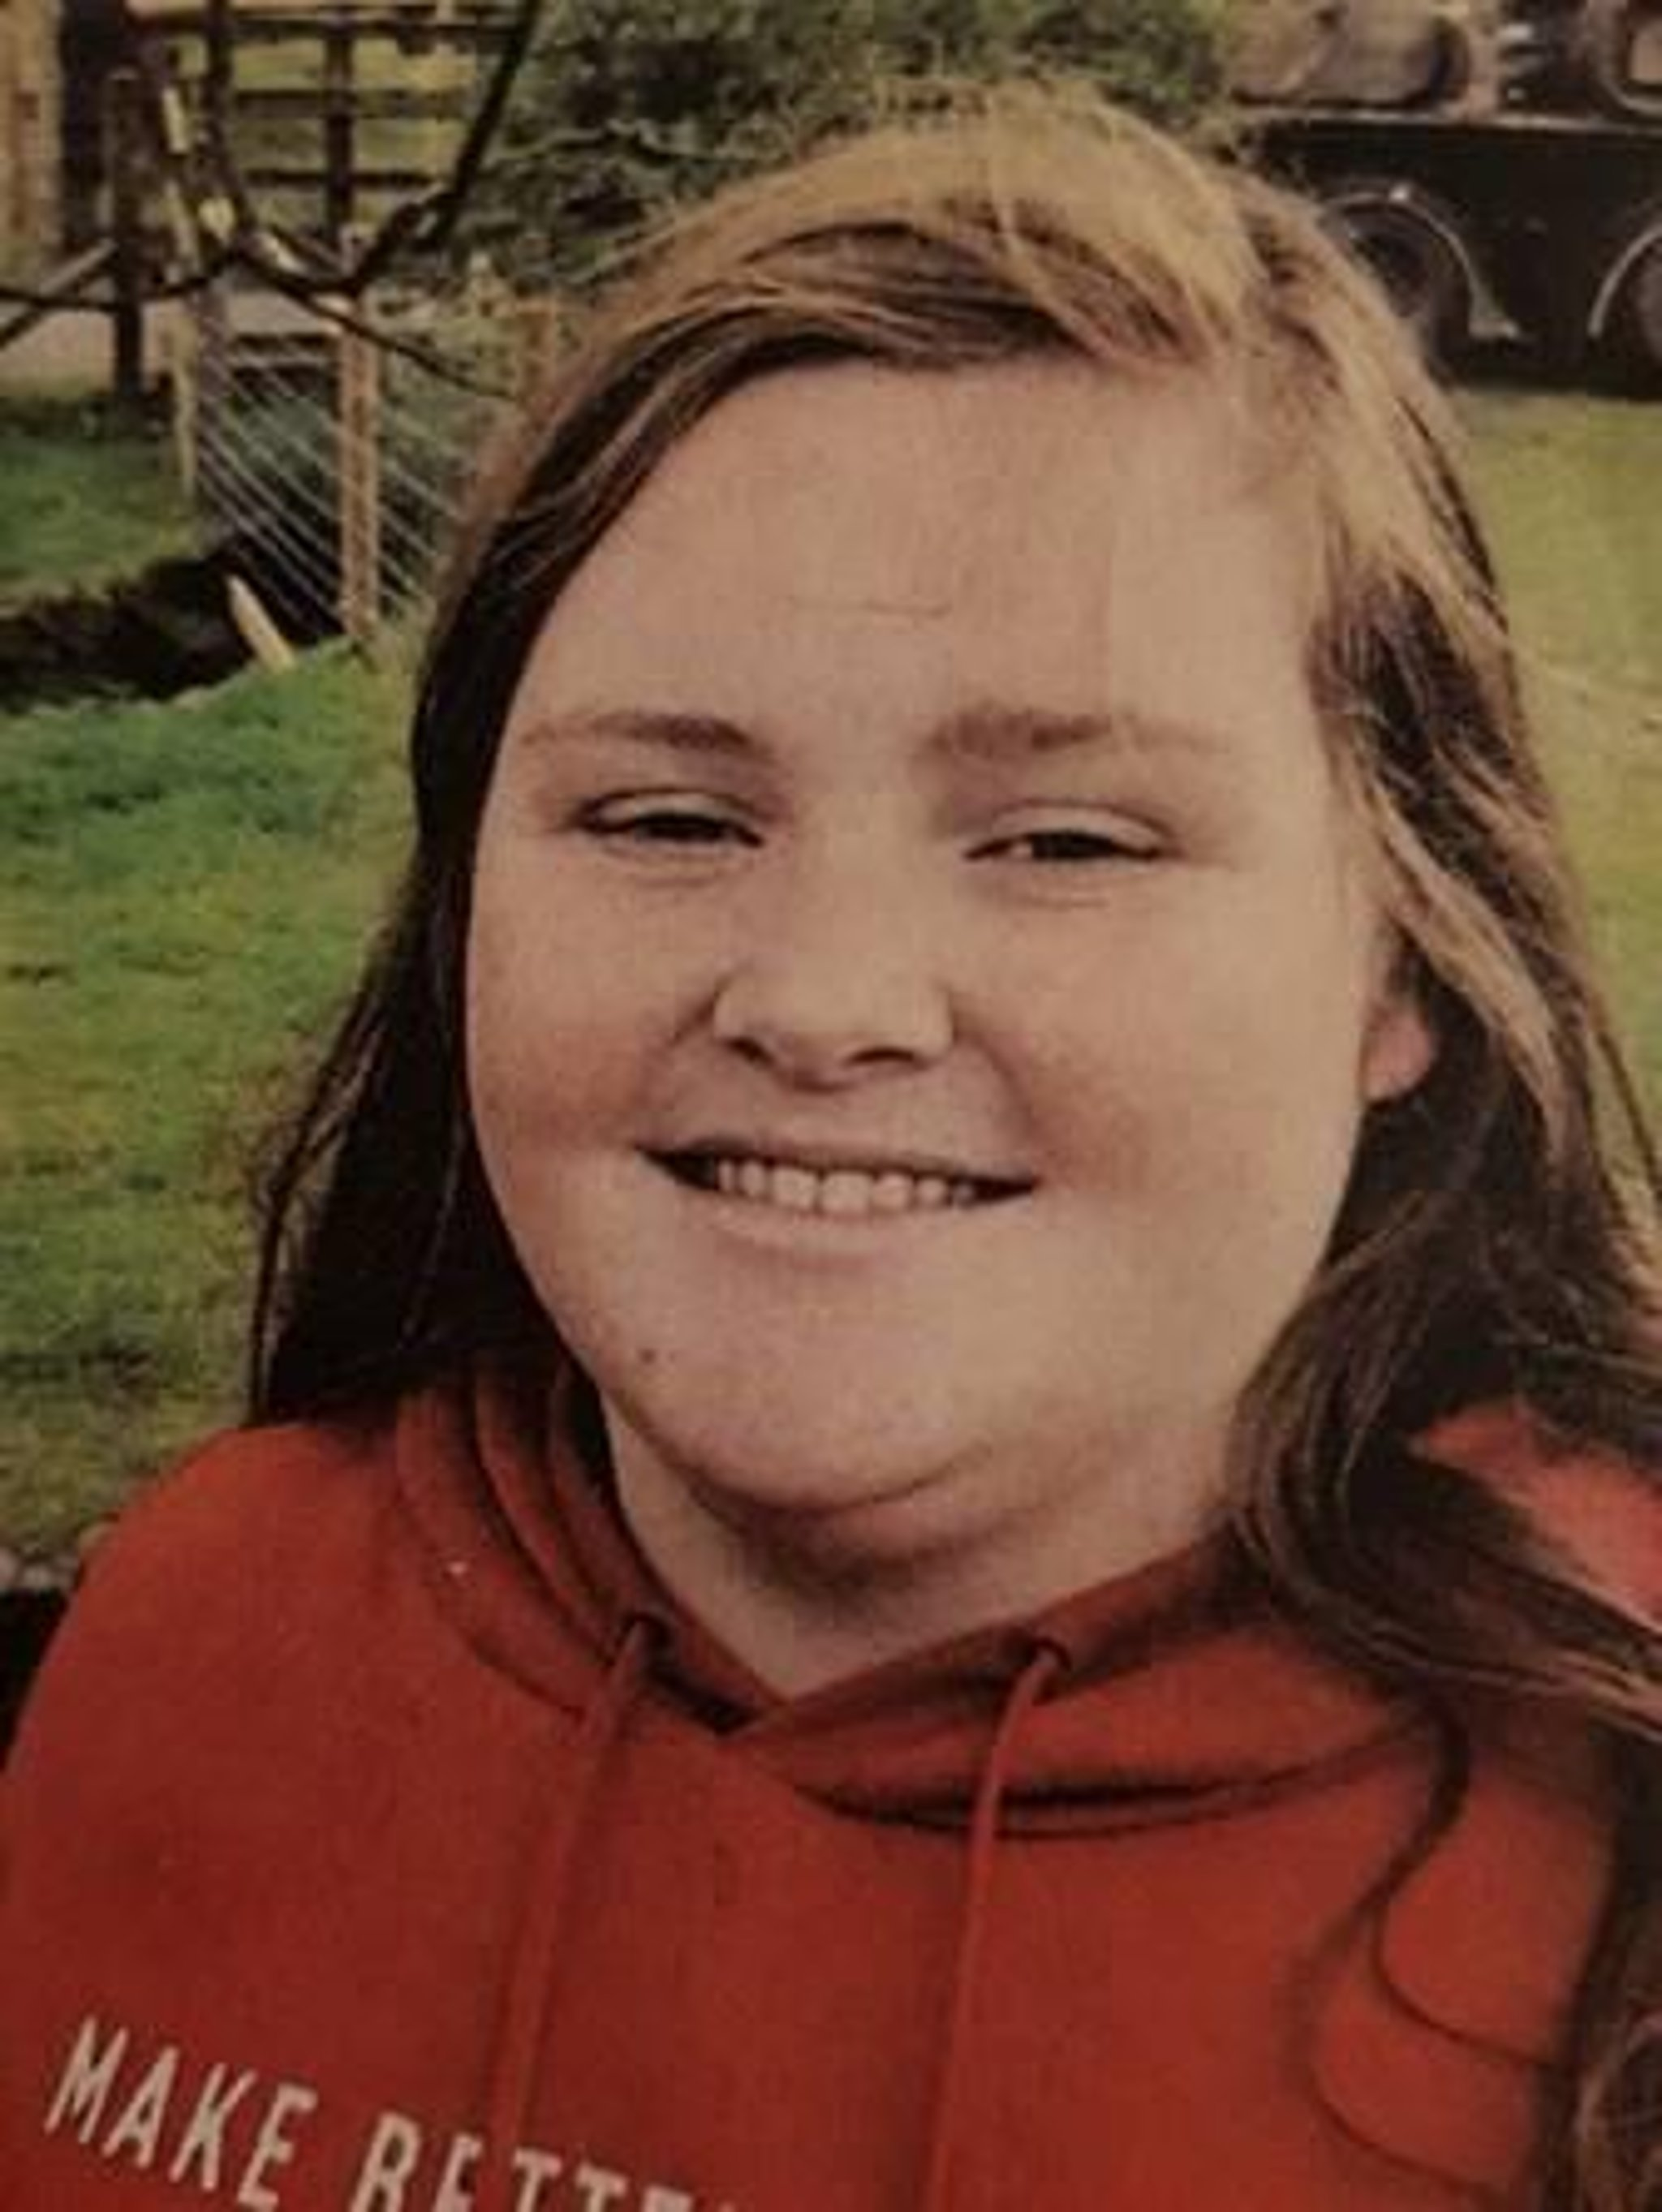 Missing teenager 'may have travelled to South Yorkshire'